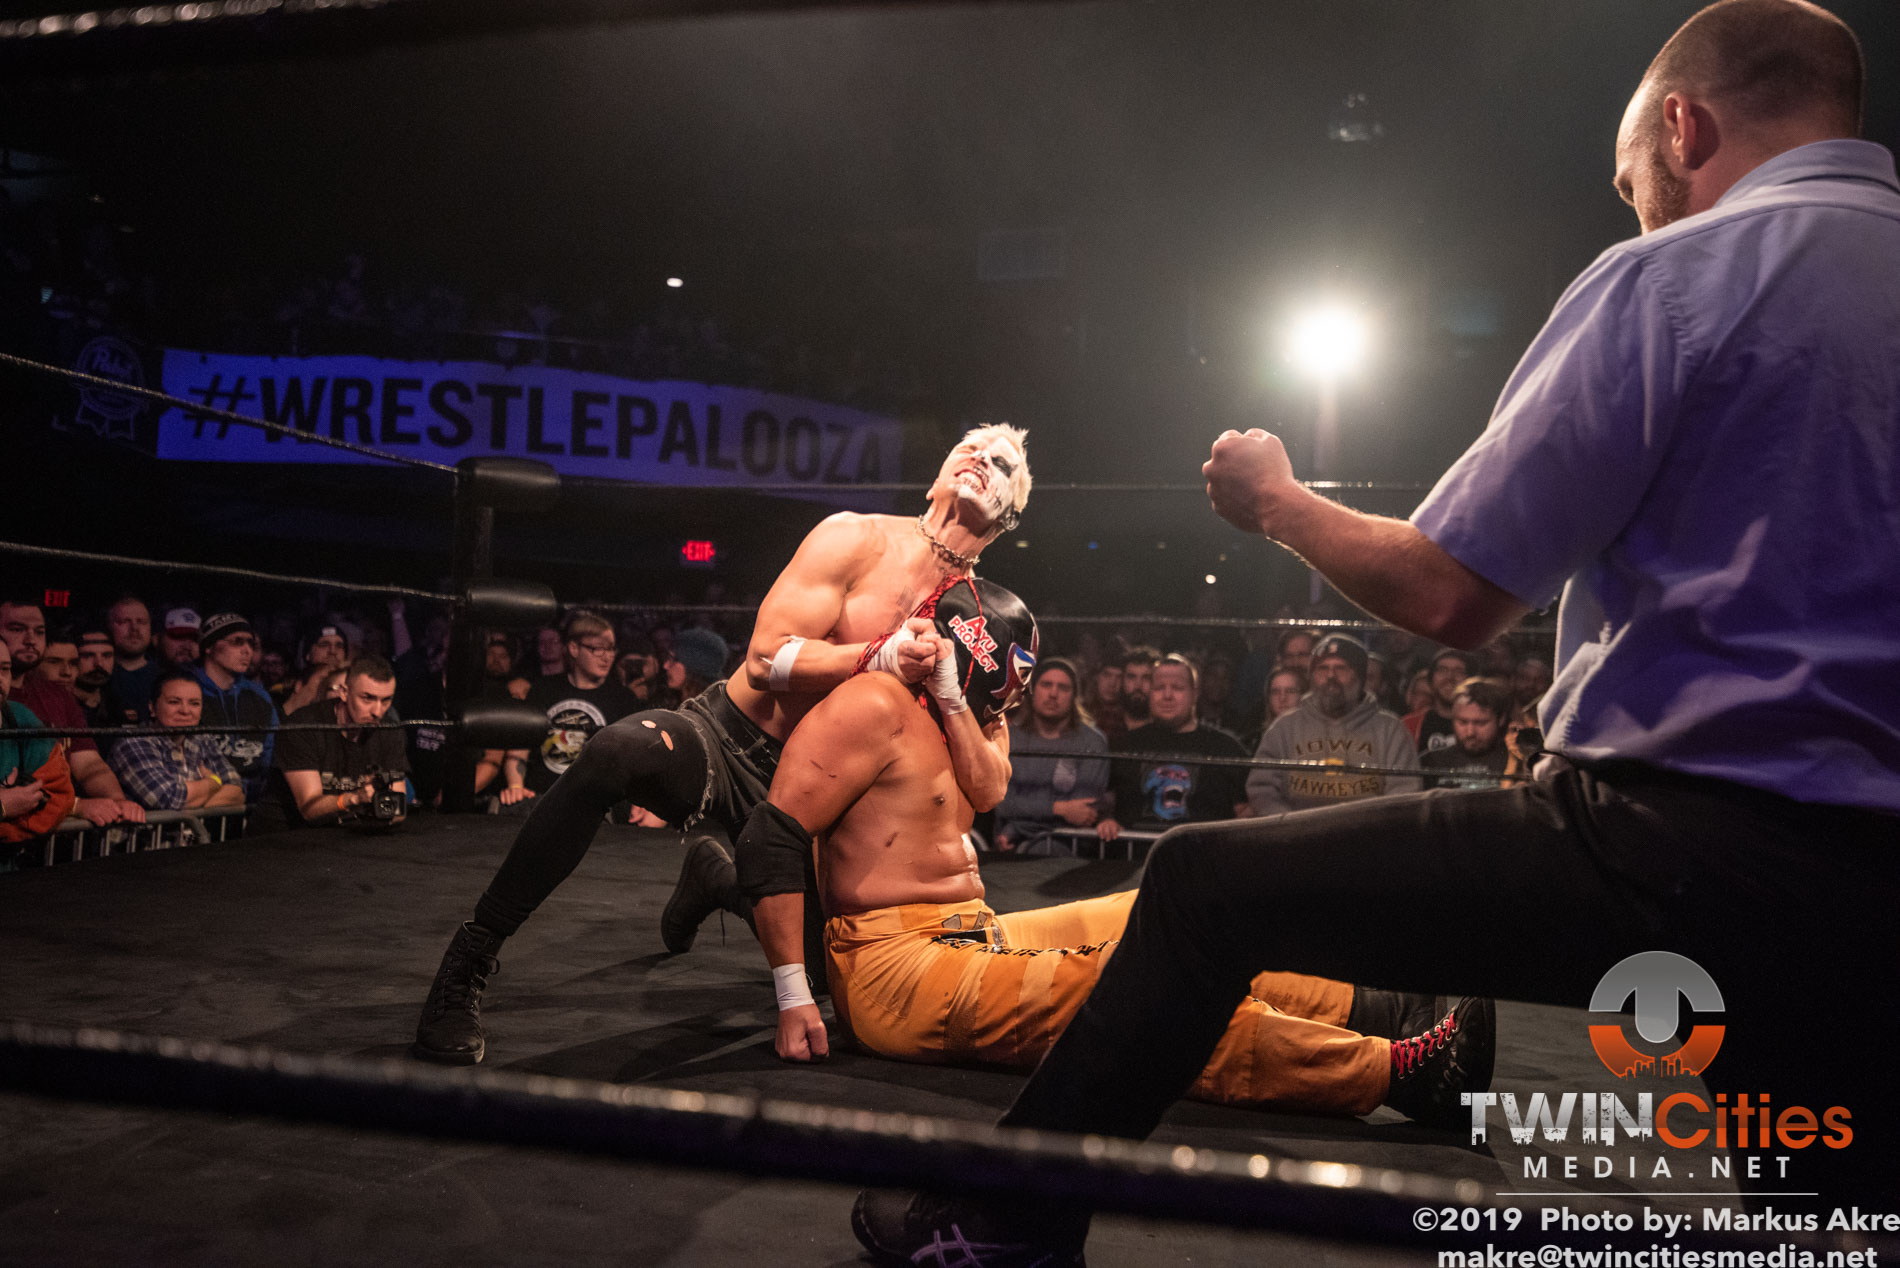 Wrestlepalooza - Match 5-6